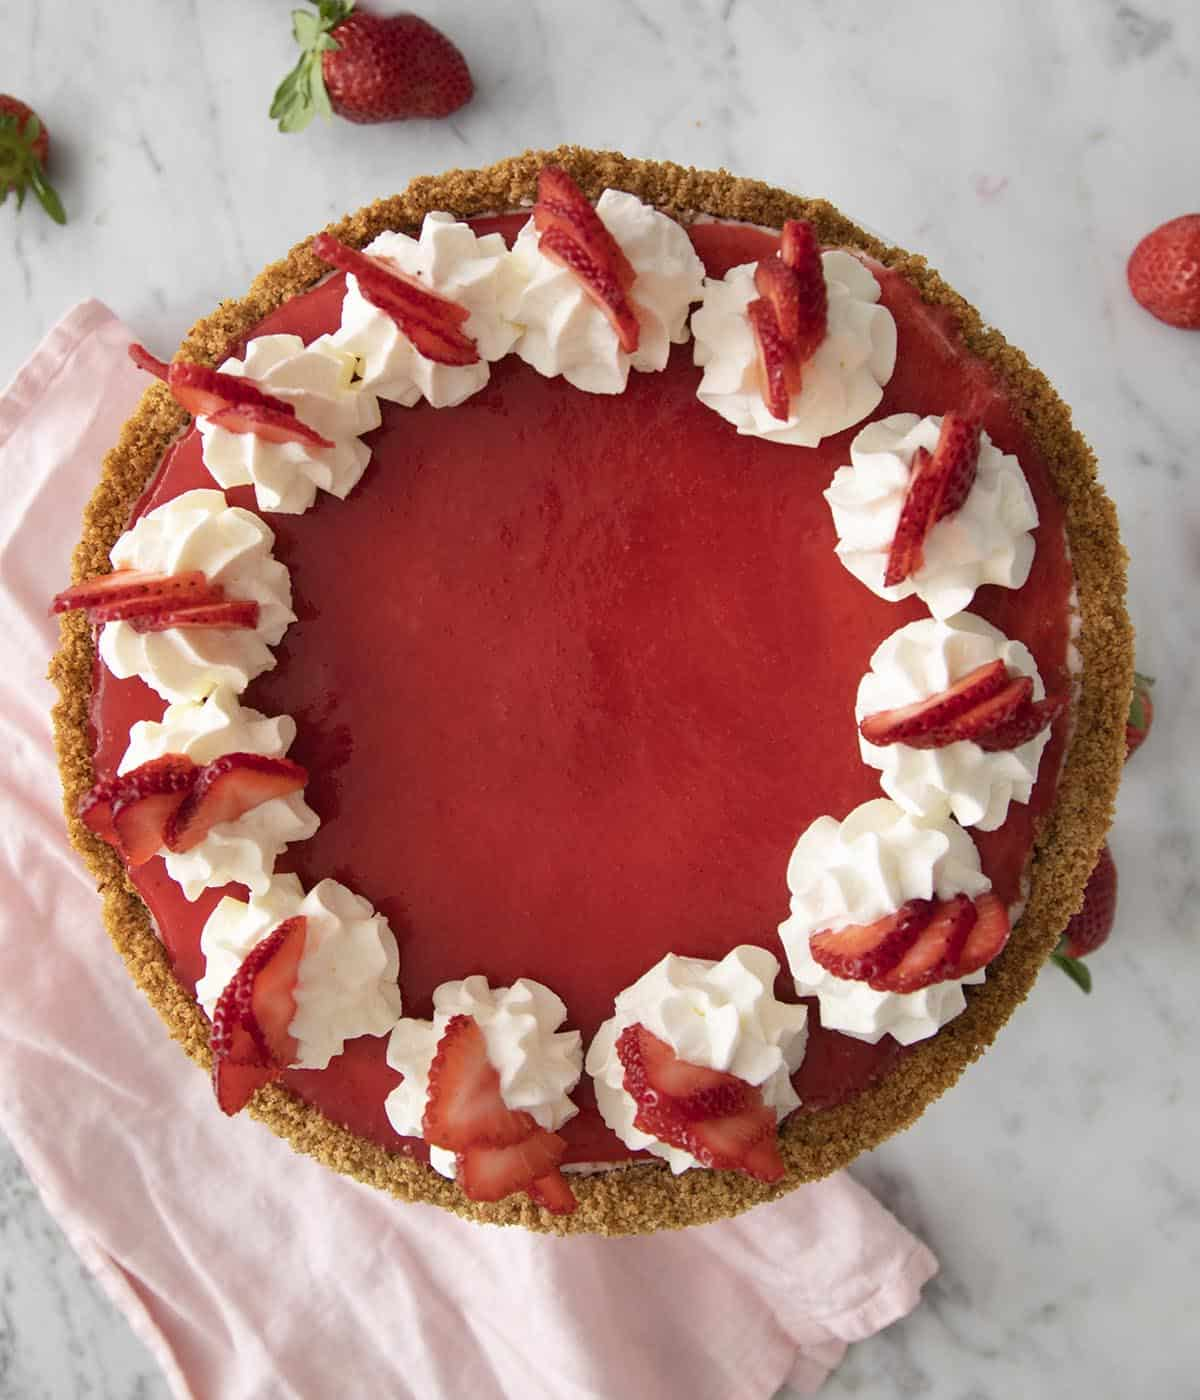 A top-down view of a beautiful no bake strawberry cheesecake with a ring of whipped cream dollops and strawberry slices on top.